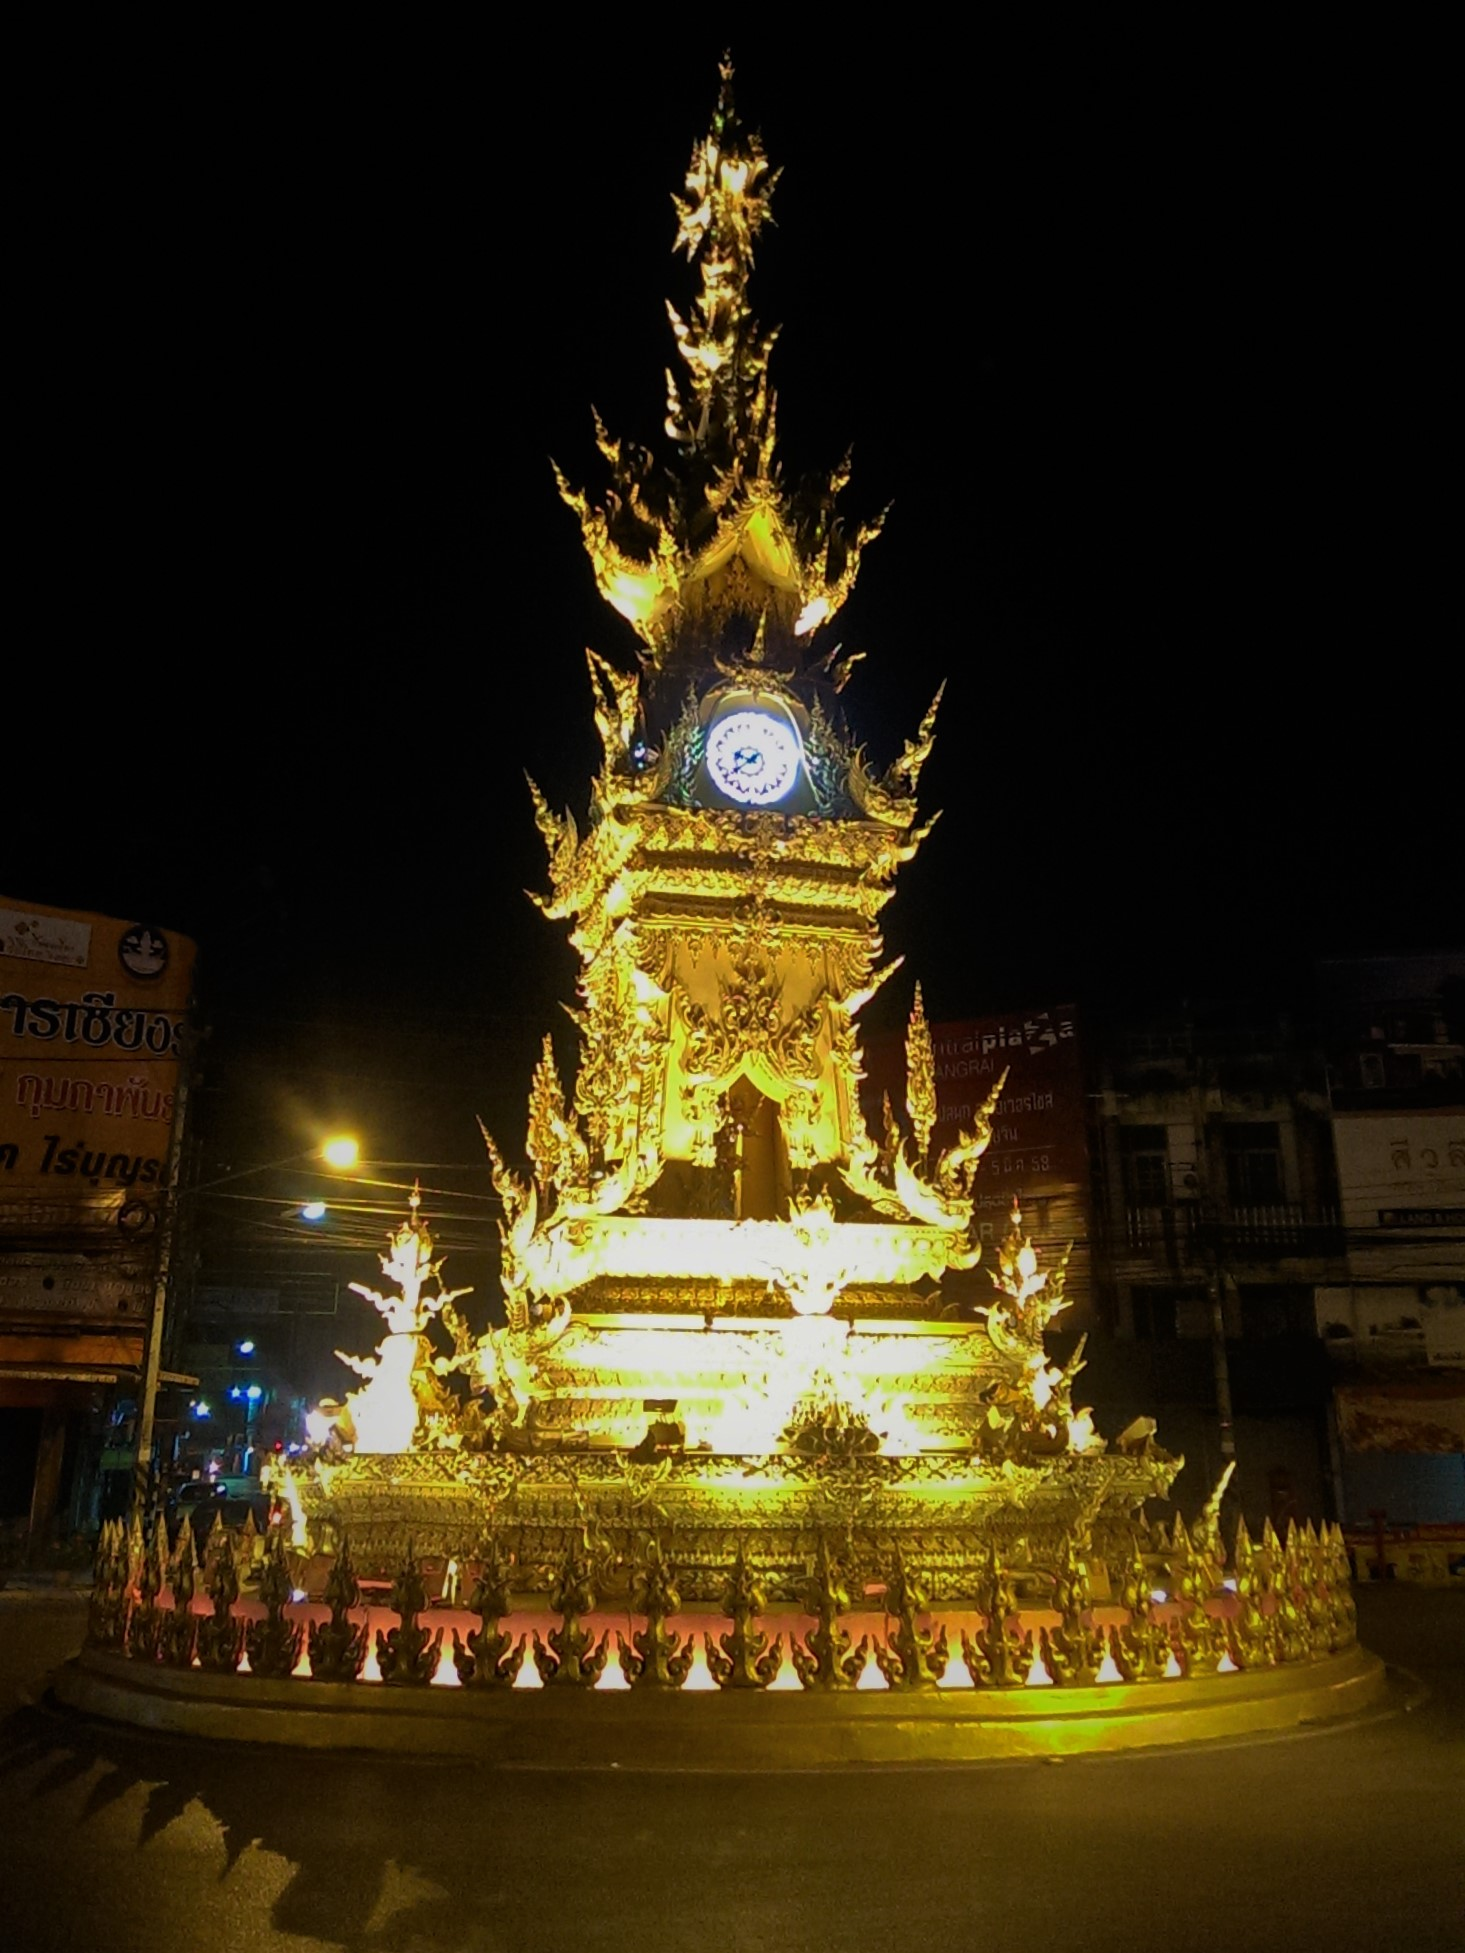 Carry It Like Harry - How to fully enjoy the sleepy town of Chiang Rai เมืองเชียงราย